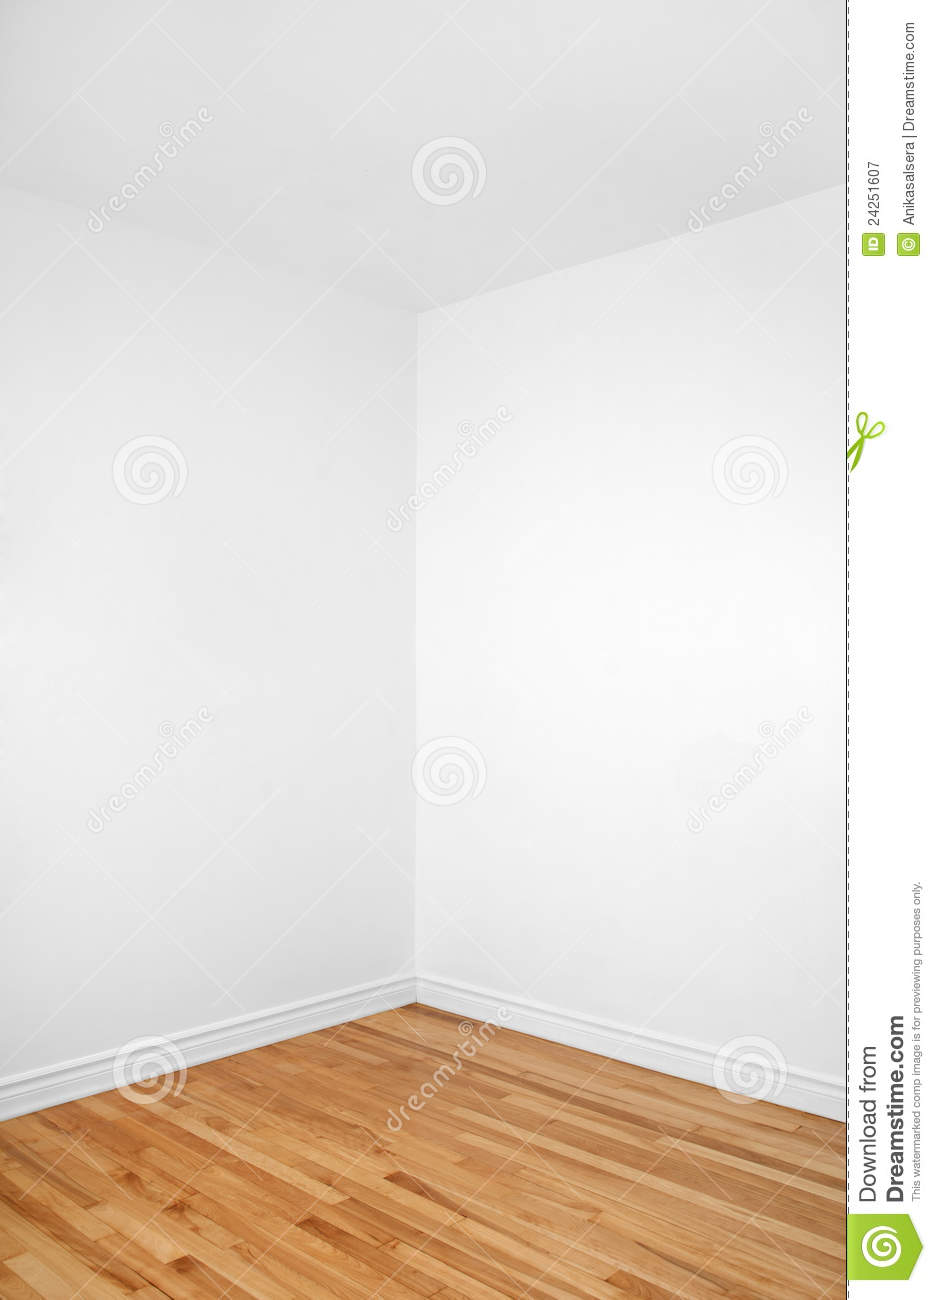 Empty Corner Of A Room With Wooden Floor Royalty Free